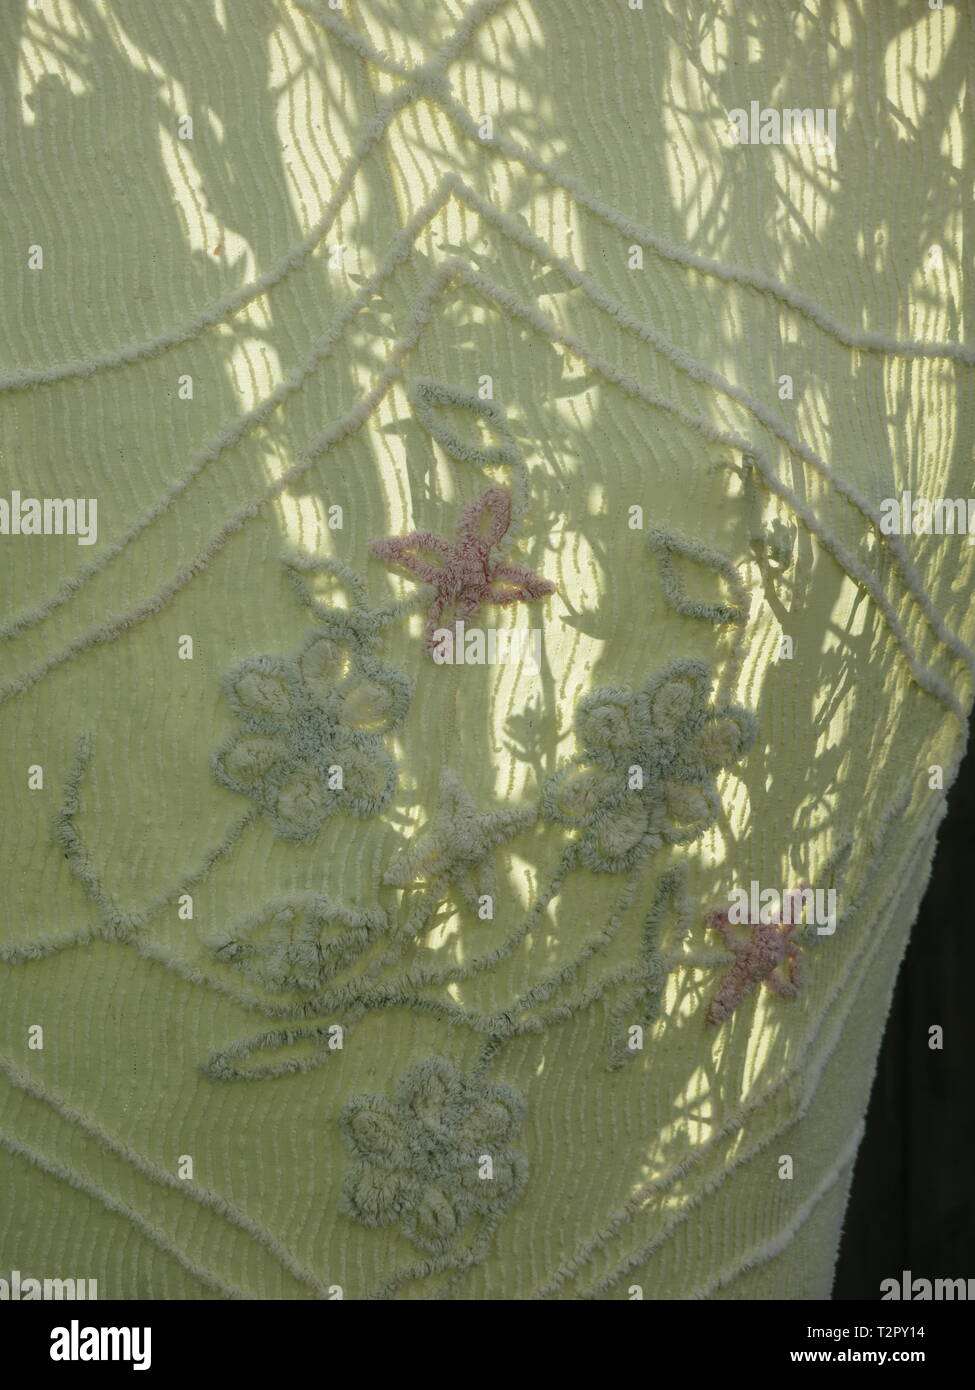 An outline of tree trunks shining through an old embroidered bedspread, recycled to wrap round a fruit tree; frost protection in an English garden. - Stock Image